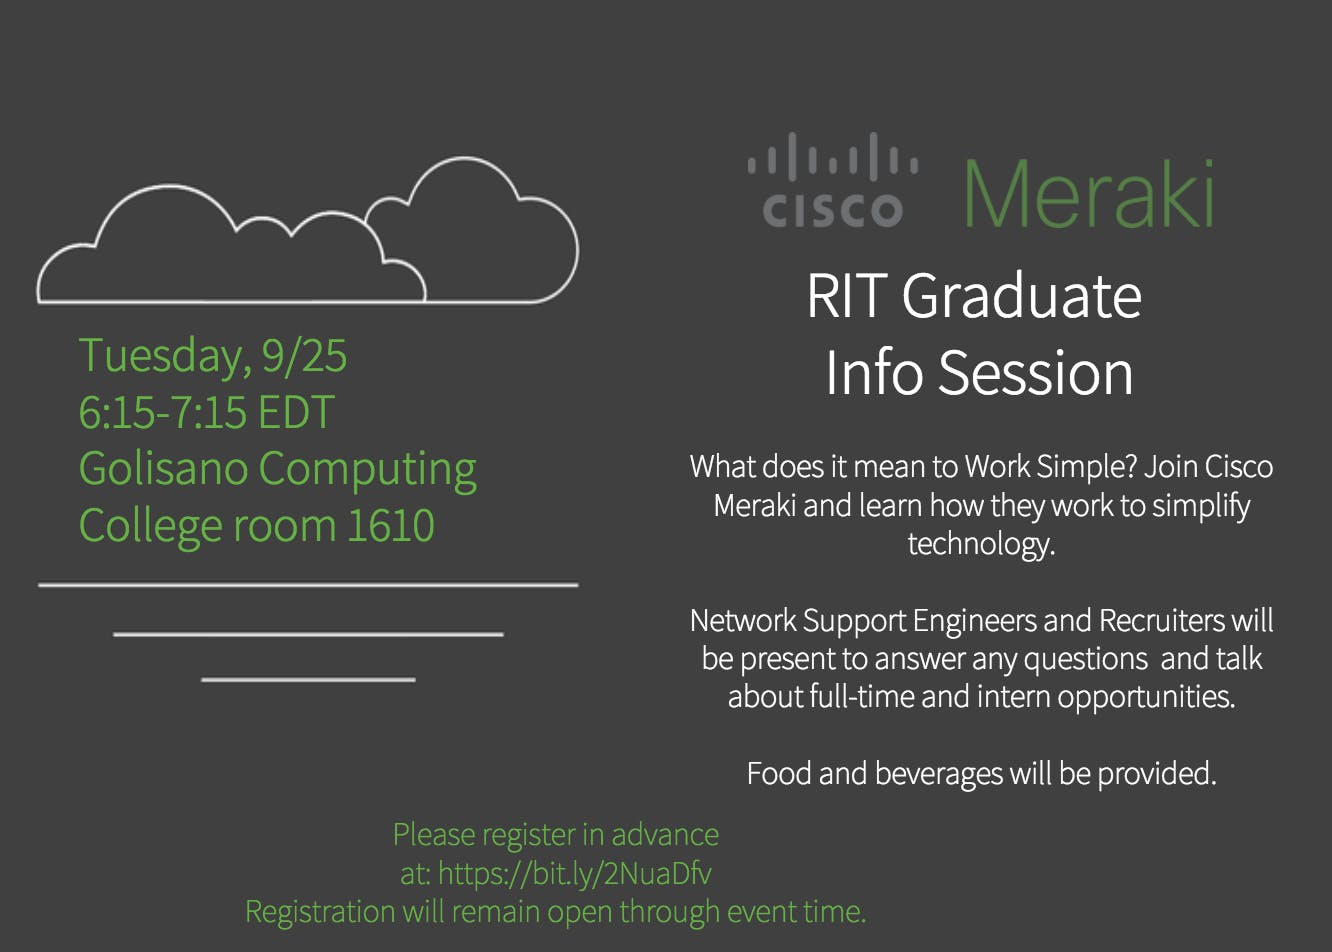 Cisco Meraki RIT Graduate Info Session